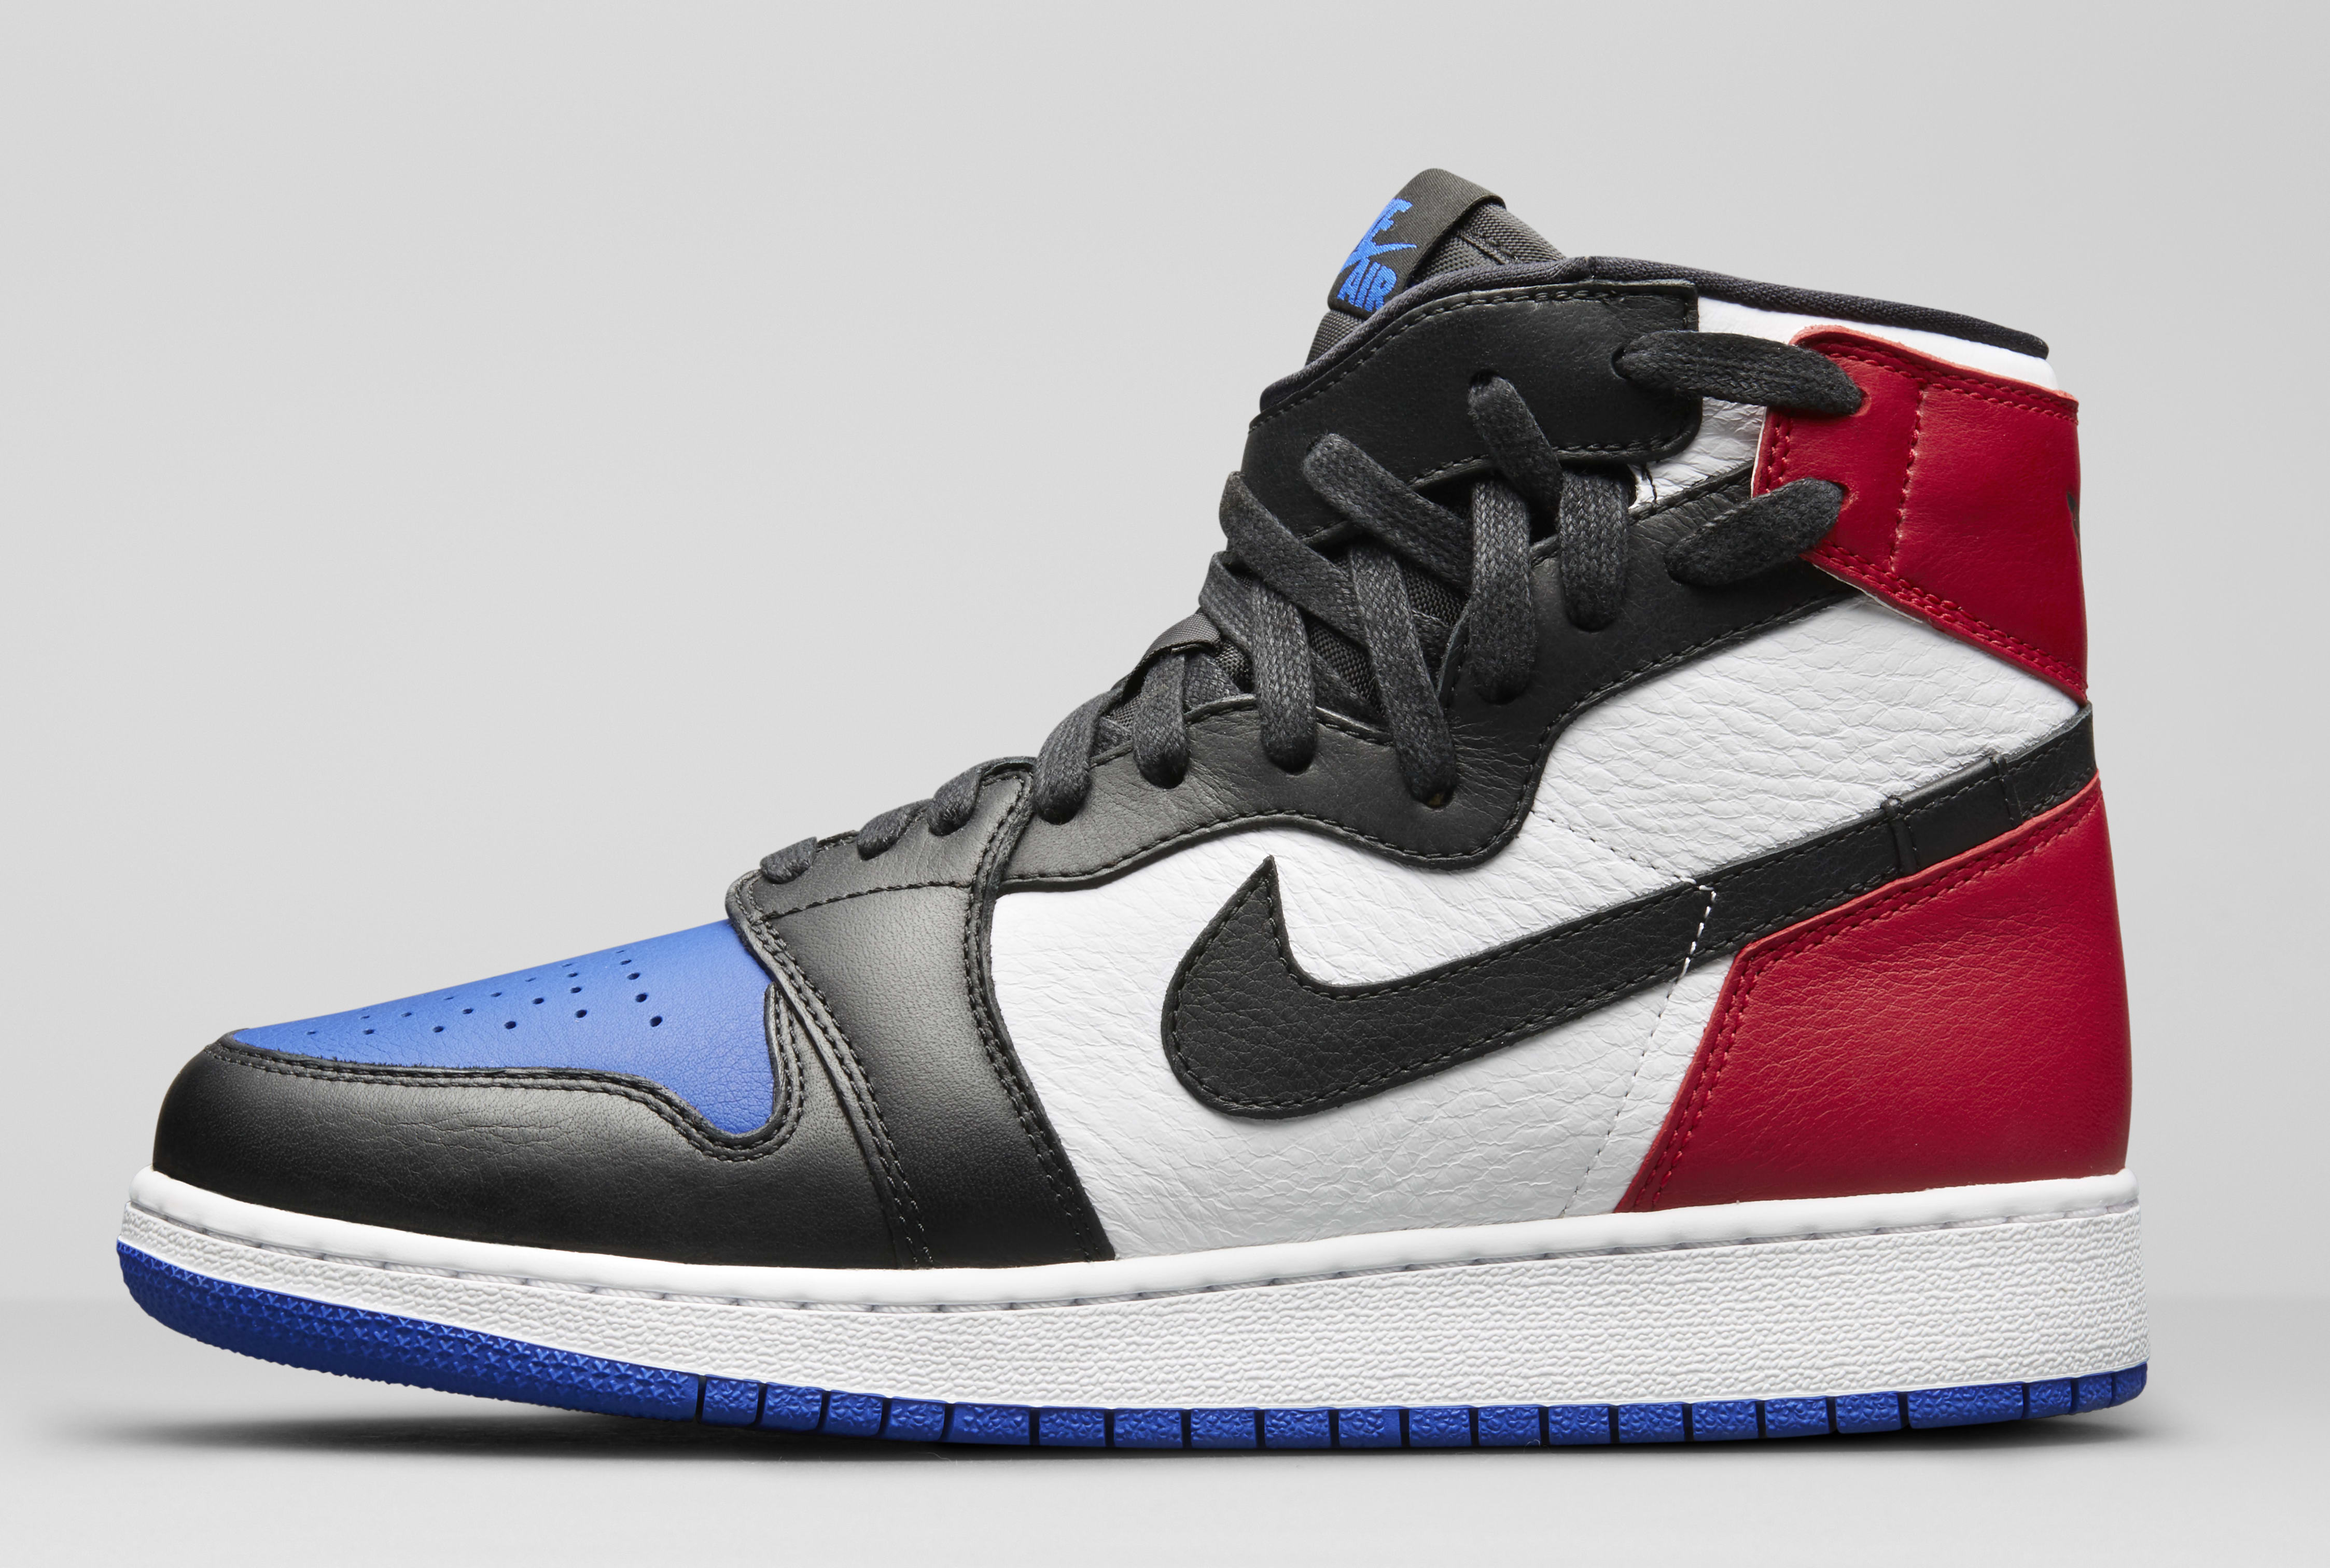 5e8c28e85ff0 28623 878a4  free shipping air jordan 1 rebel top 3 at4151 001 lateral  4ddf7 3a73a